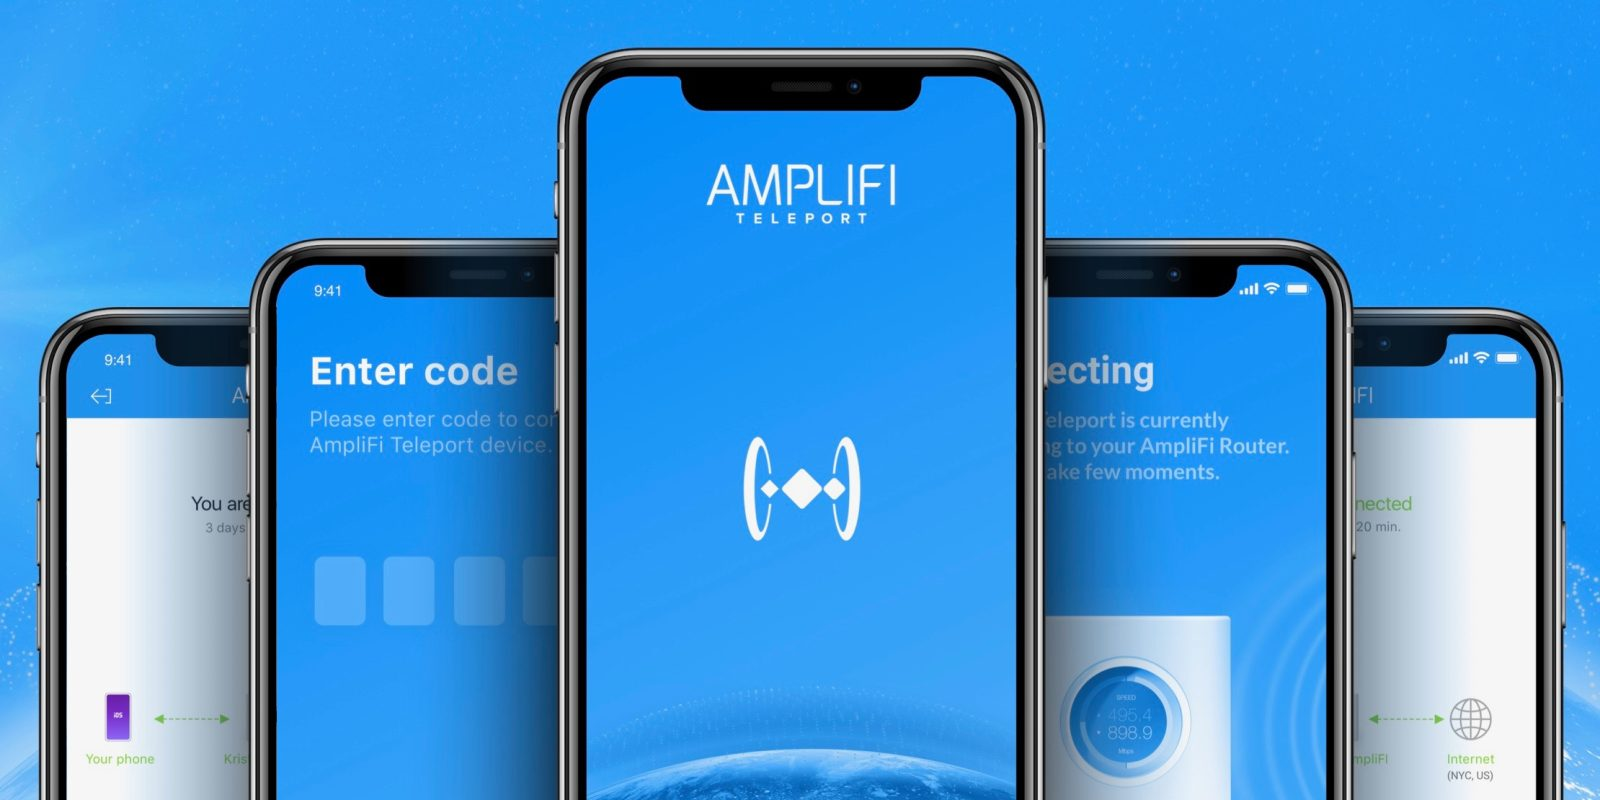 AmpliFi mesh Wi-Fi users gain free VPN privacy protection